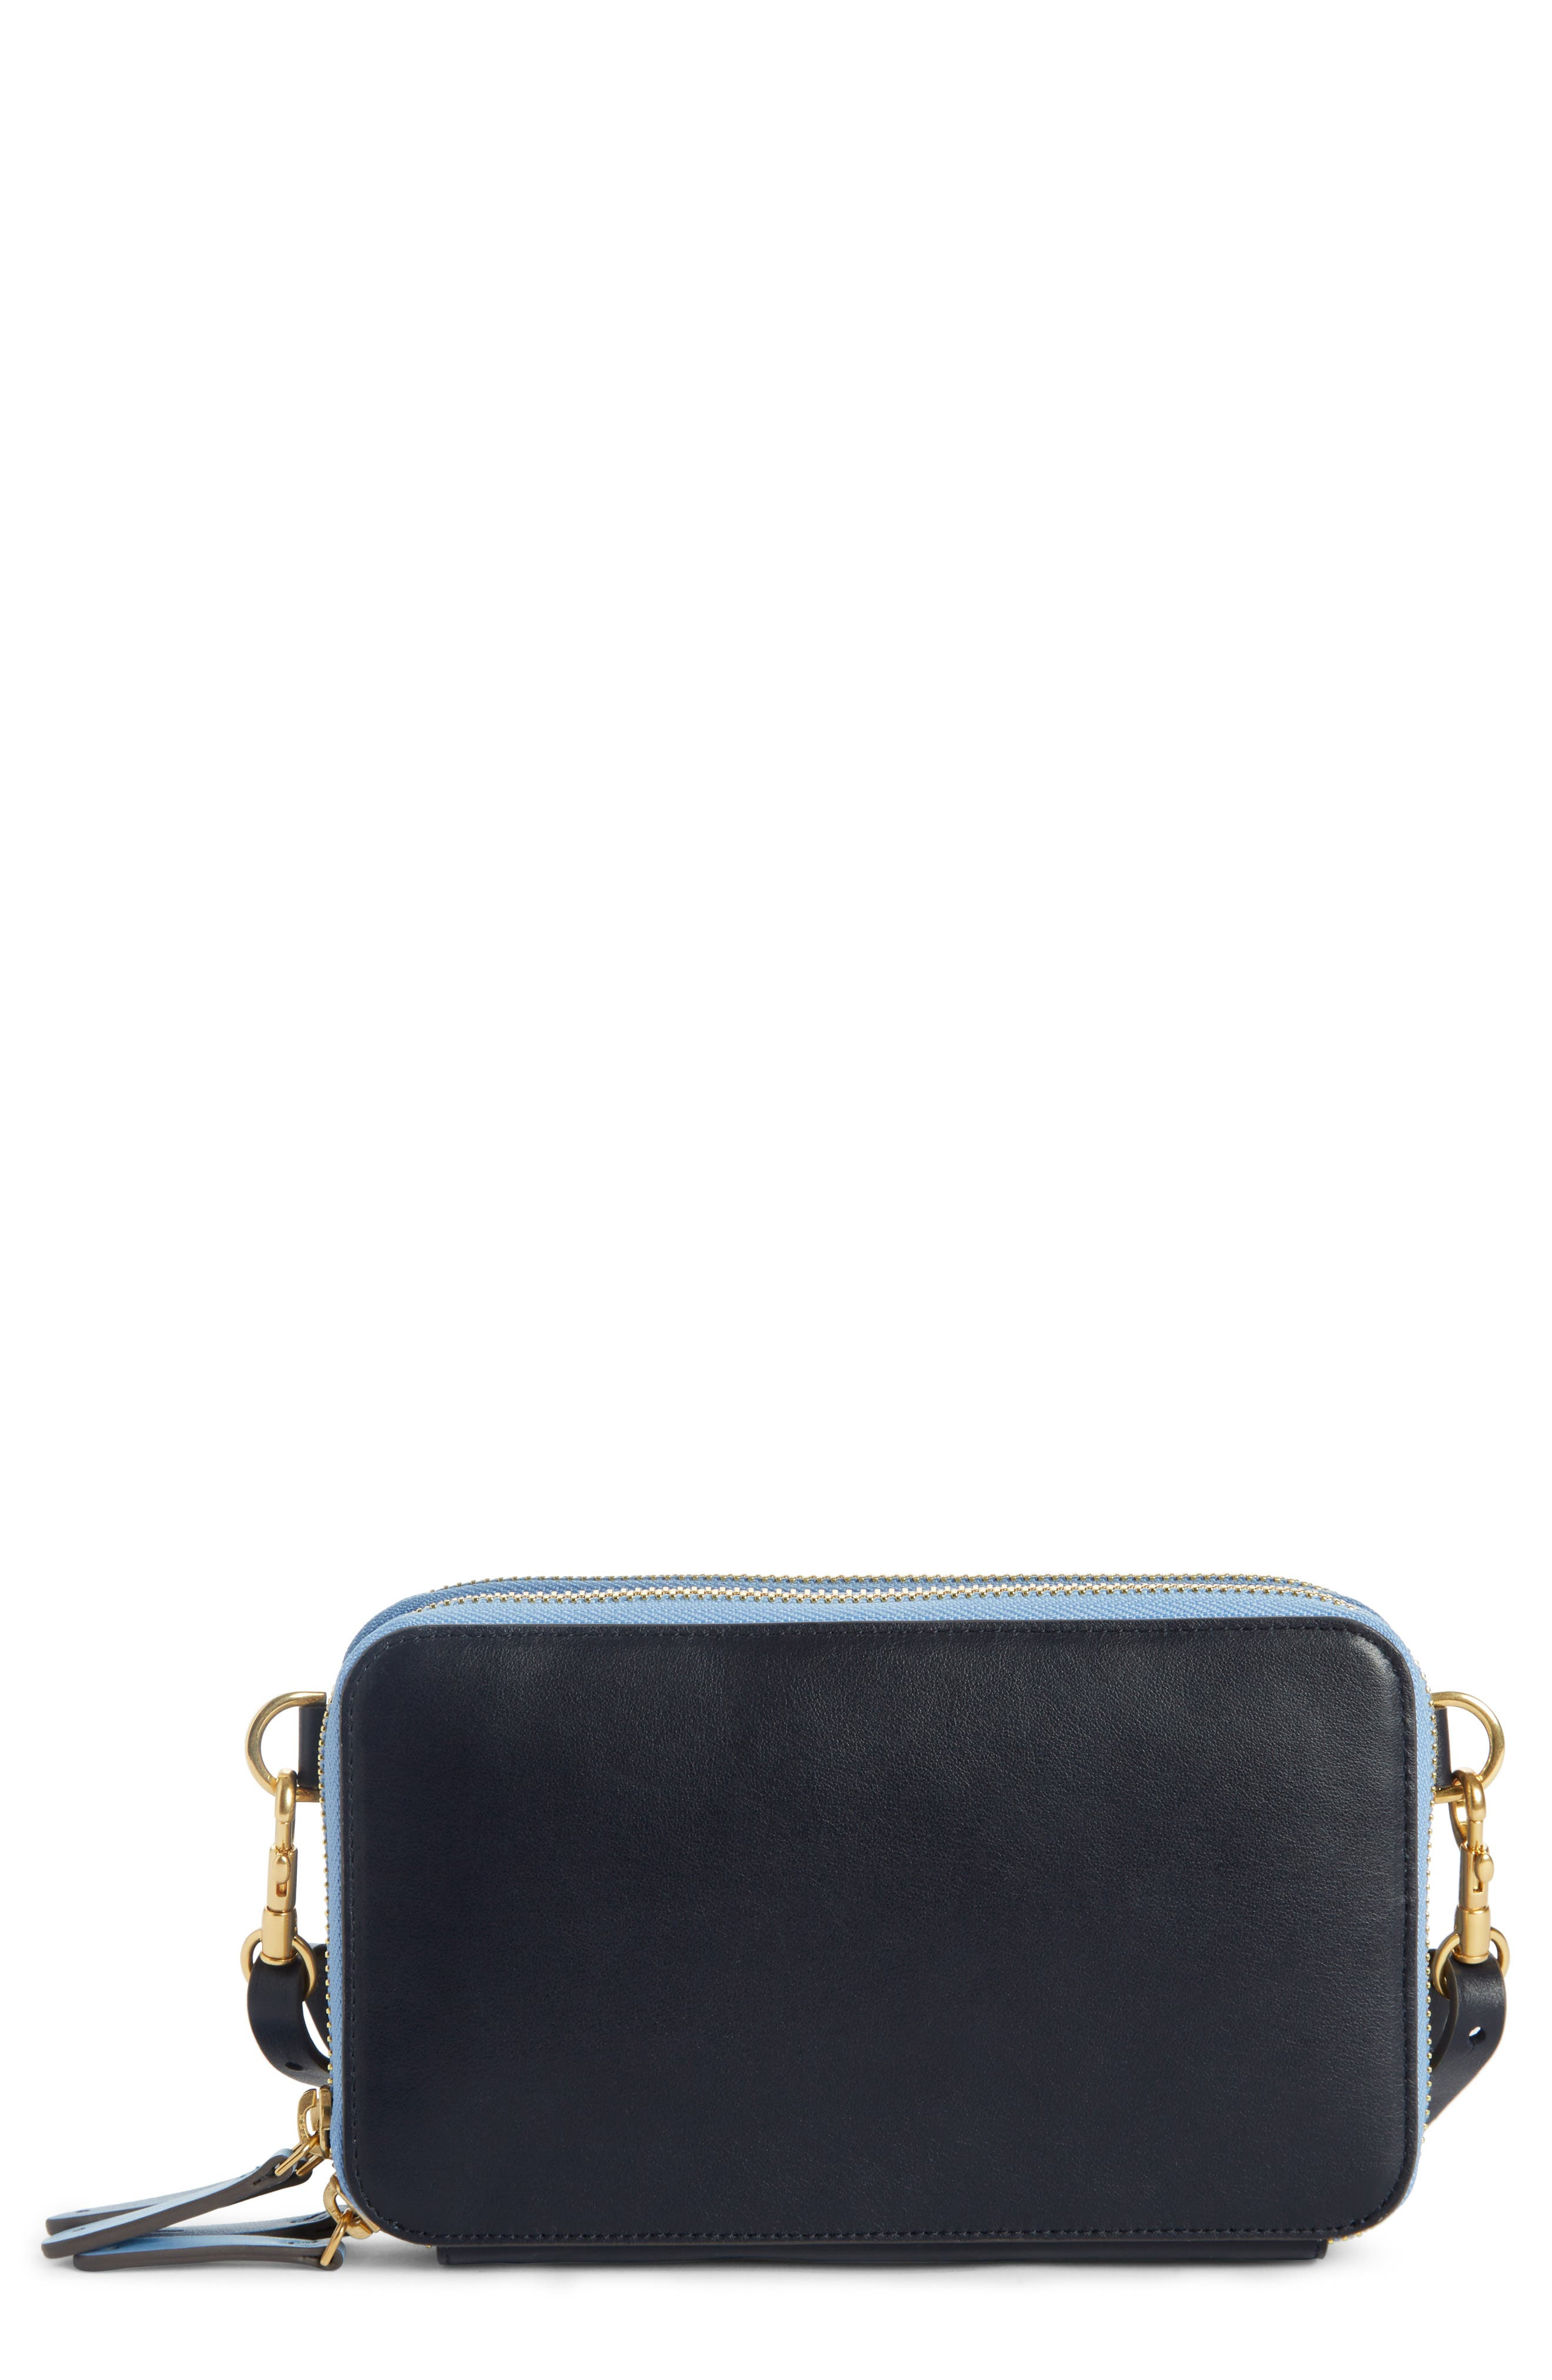 Anya Hindmarch Stack Leather Wallet